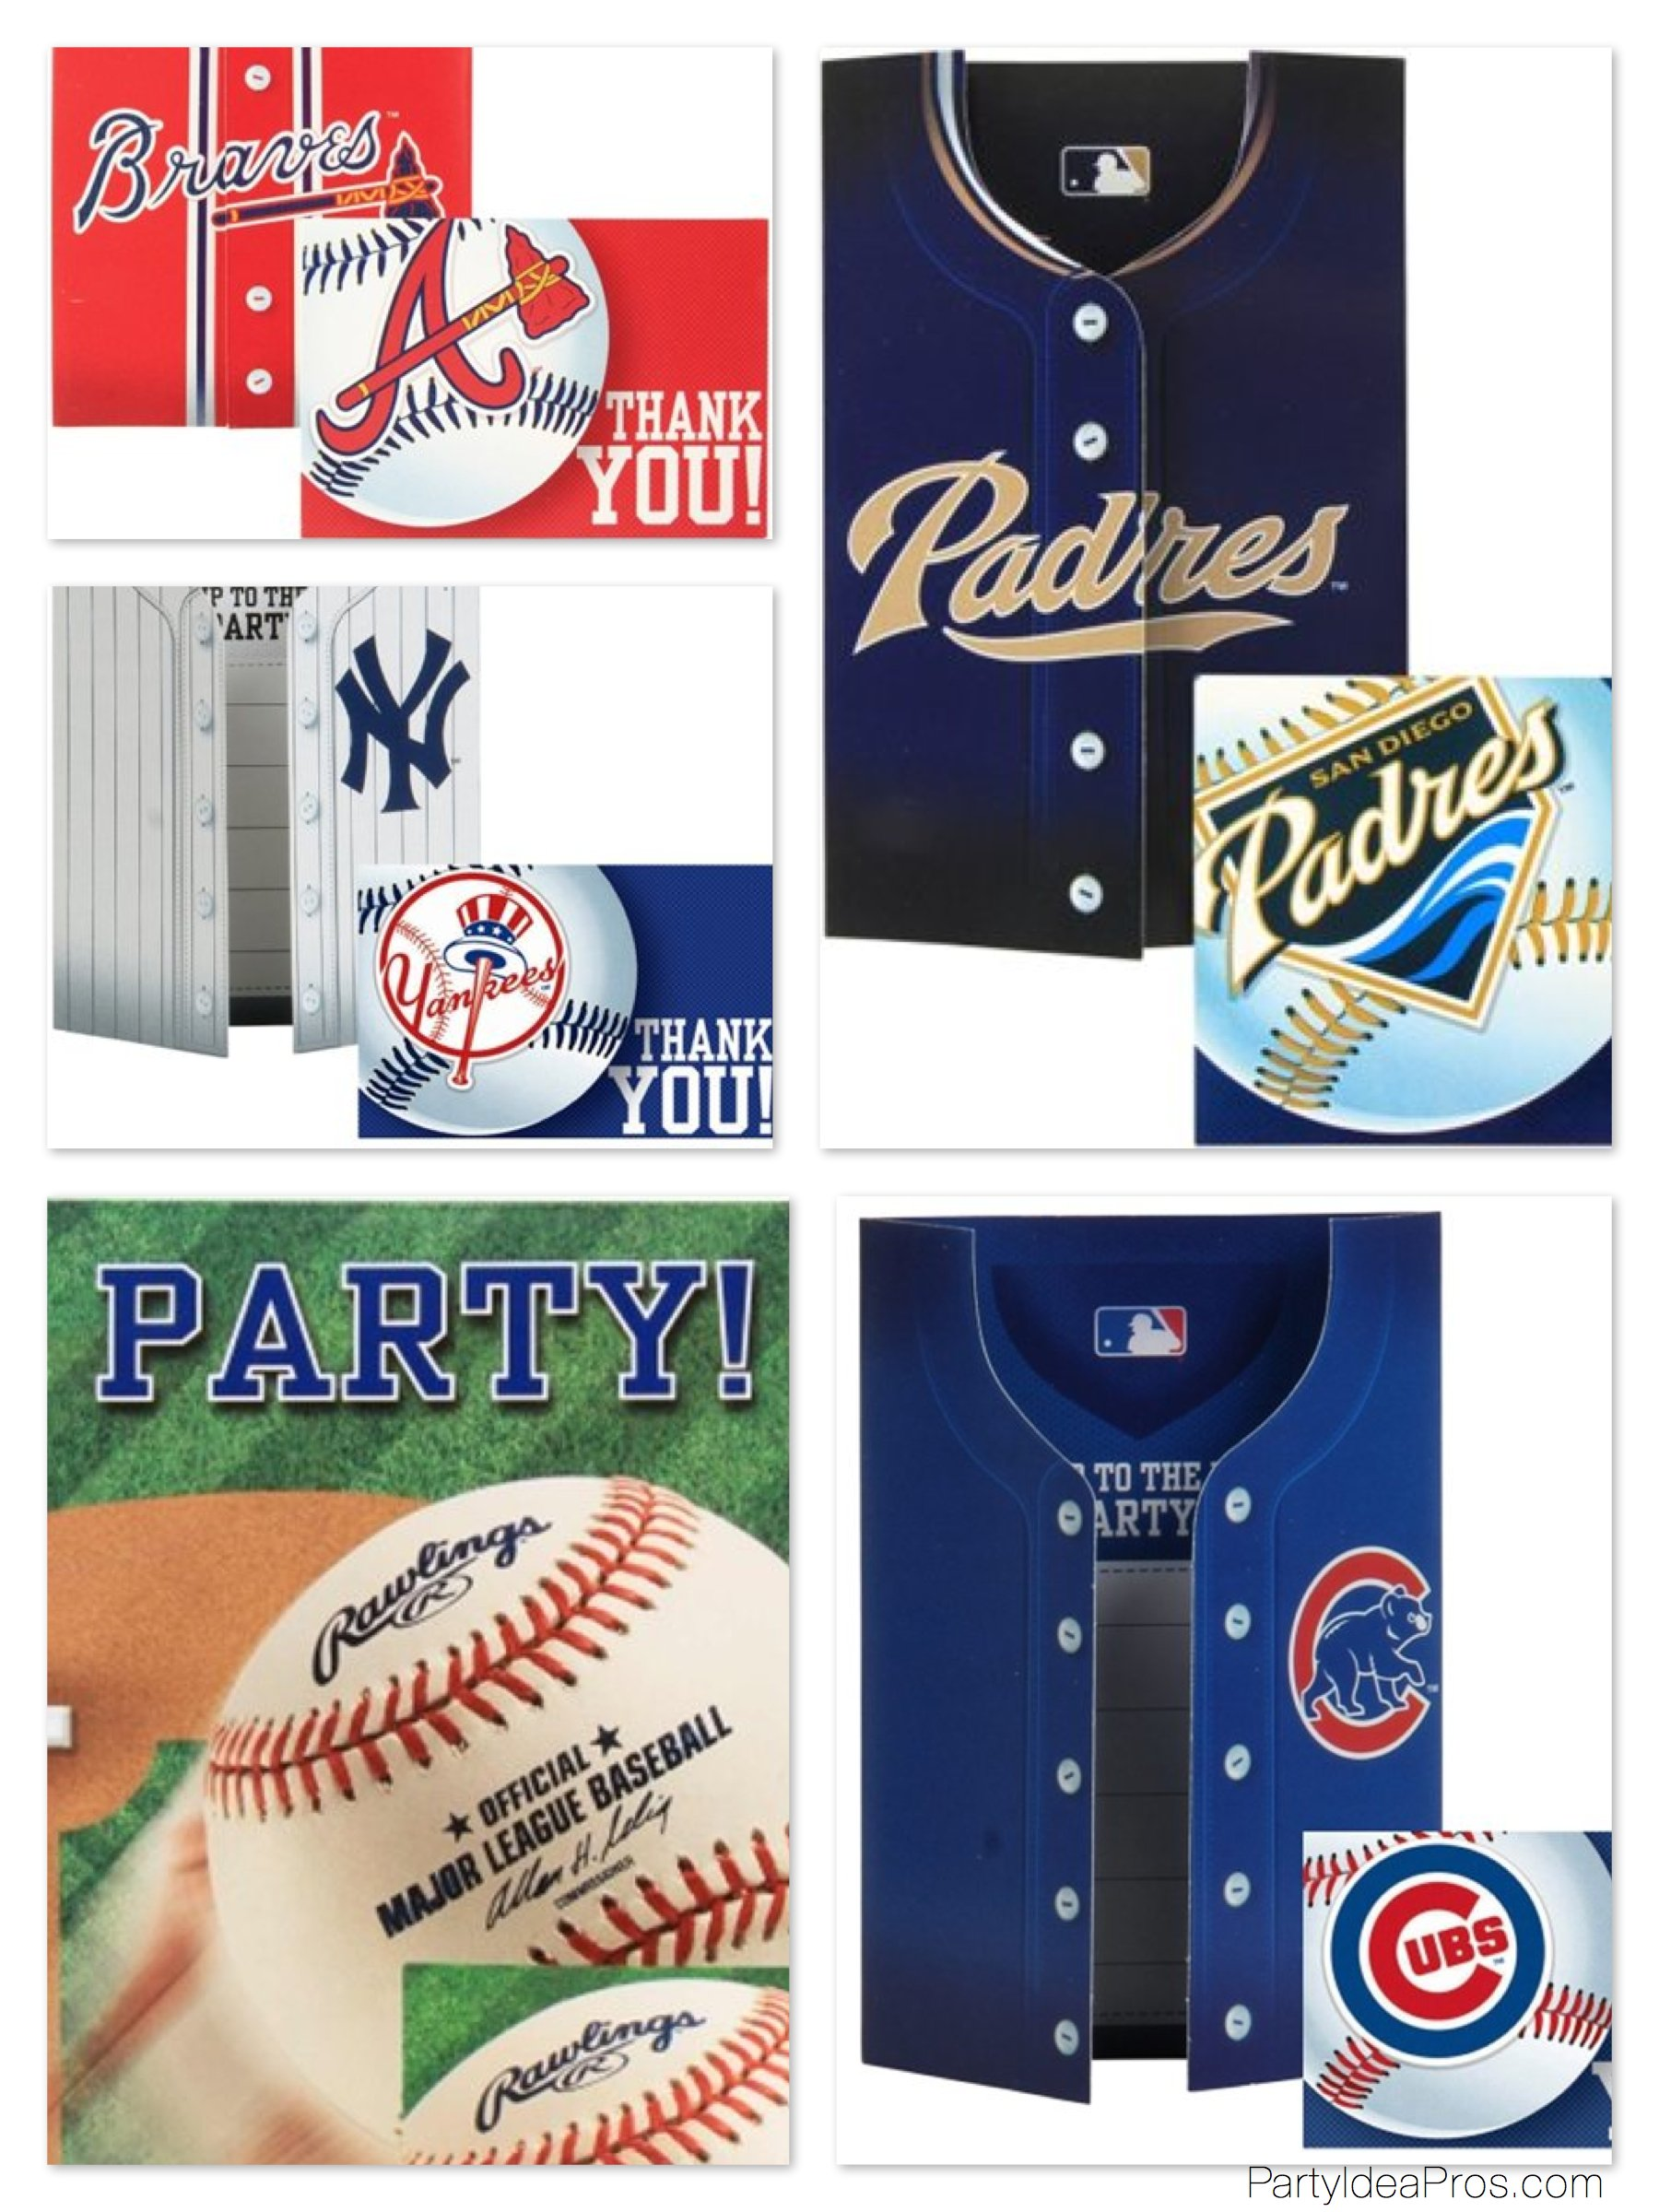 Baseball MBL Team Party Invitations & Thank You Notes